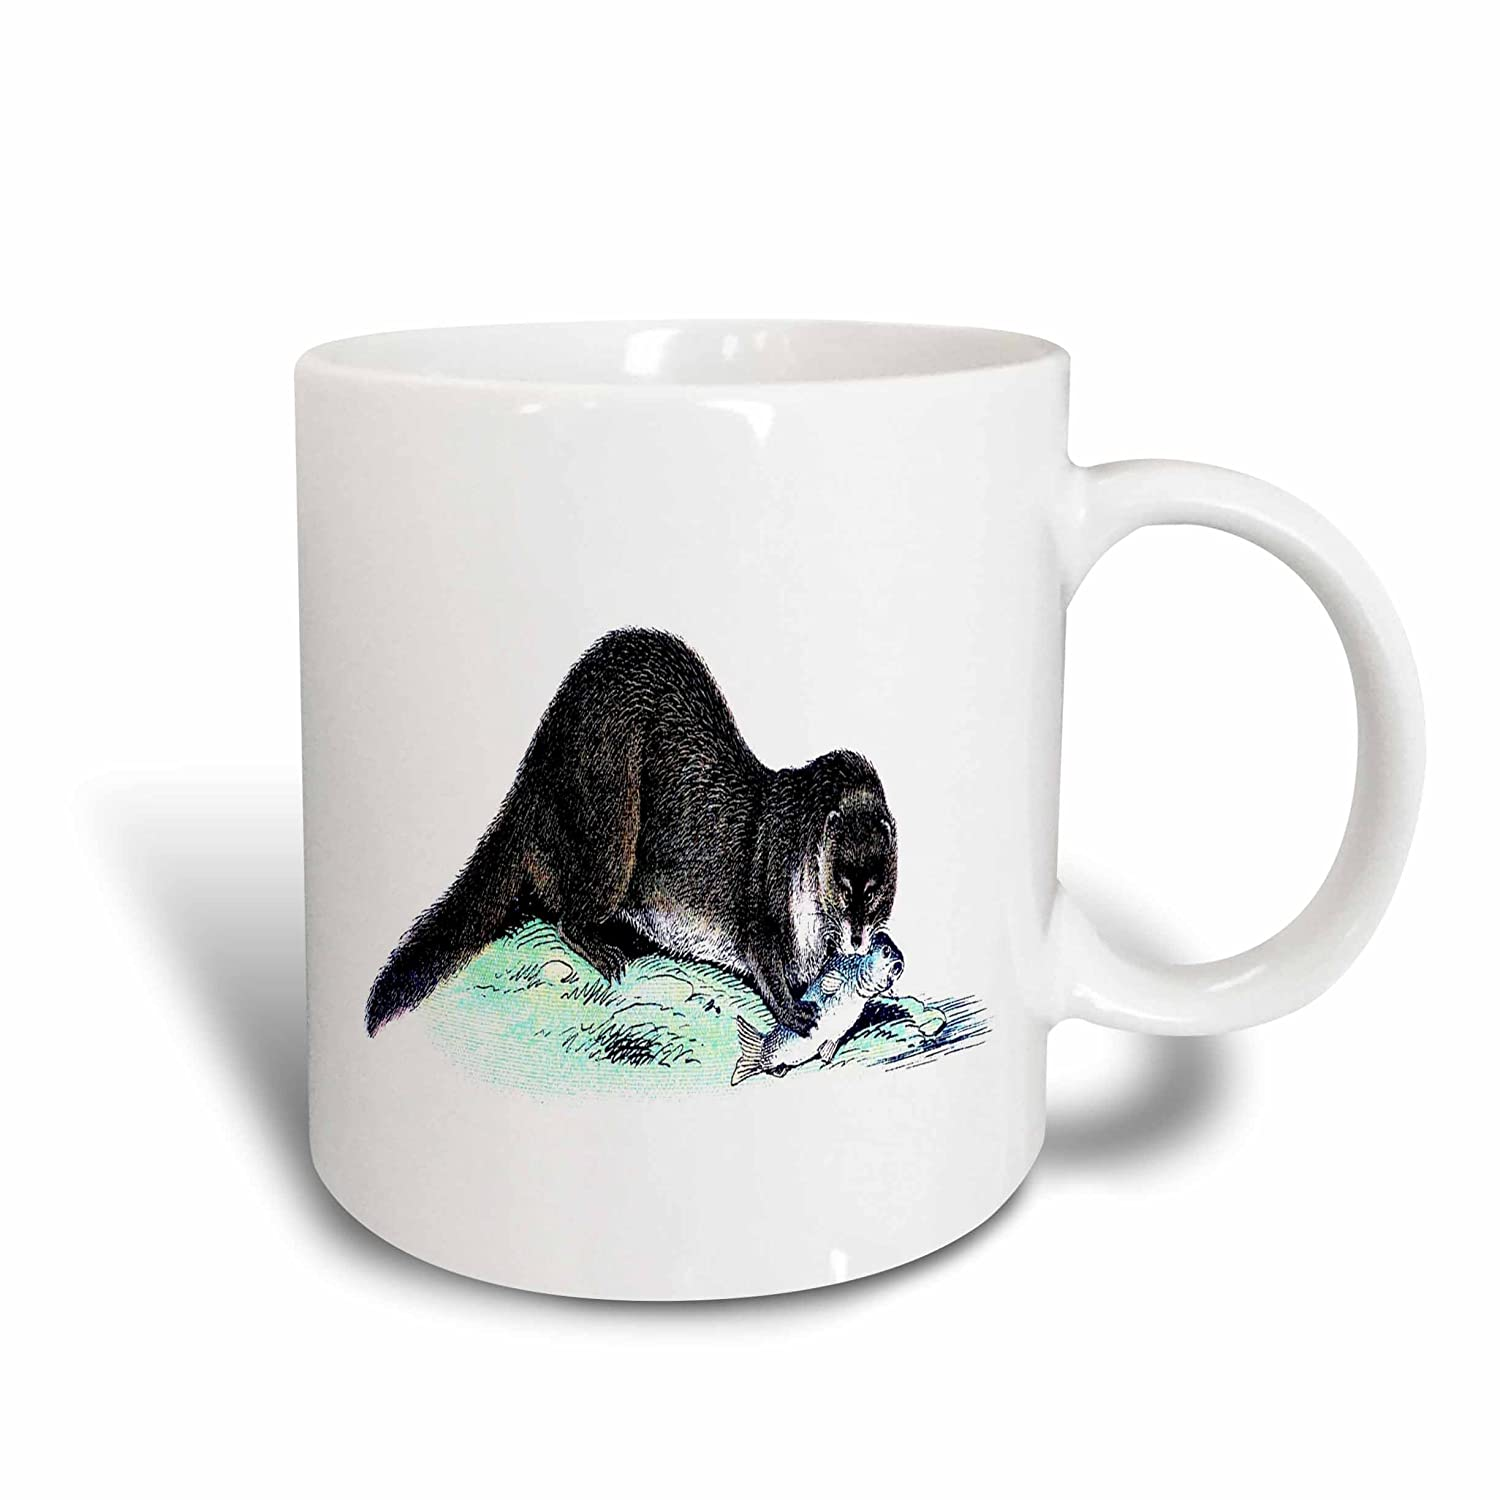 Buy 3drose Mug 44821 2 Vintage Otter With Fish Ceramic Mug 15 Ounce Online At Low Prices In India Amazon In